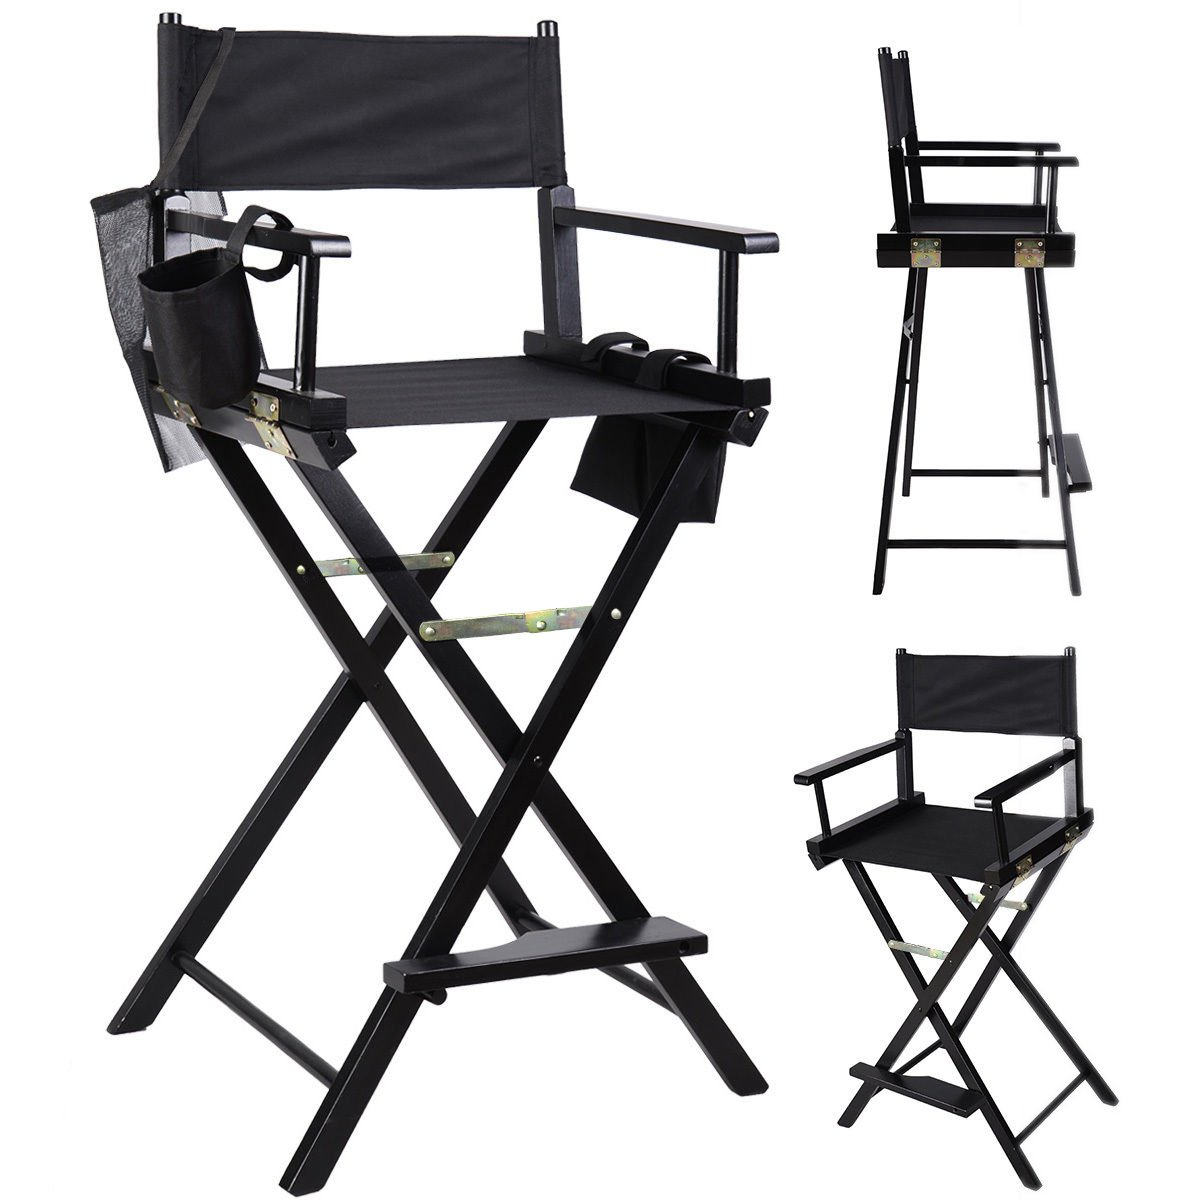 Amazon.com: Professional Makeup Artist Directors Chair Wood Light Weight  Foldable Black New: Kitchen U0026 Dining